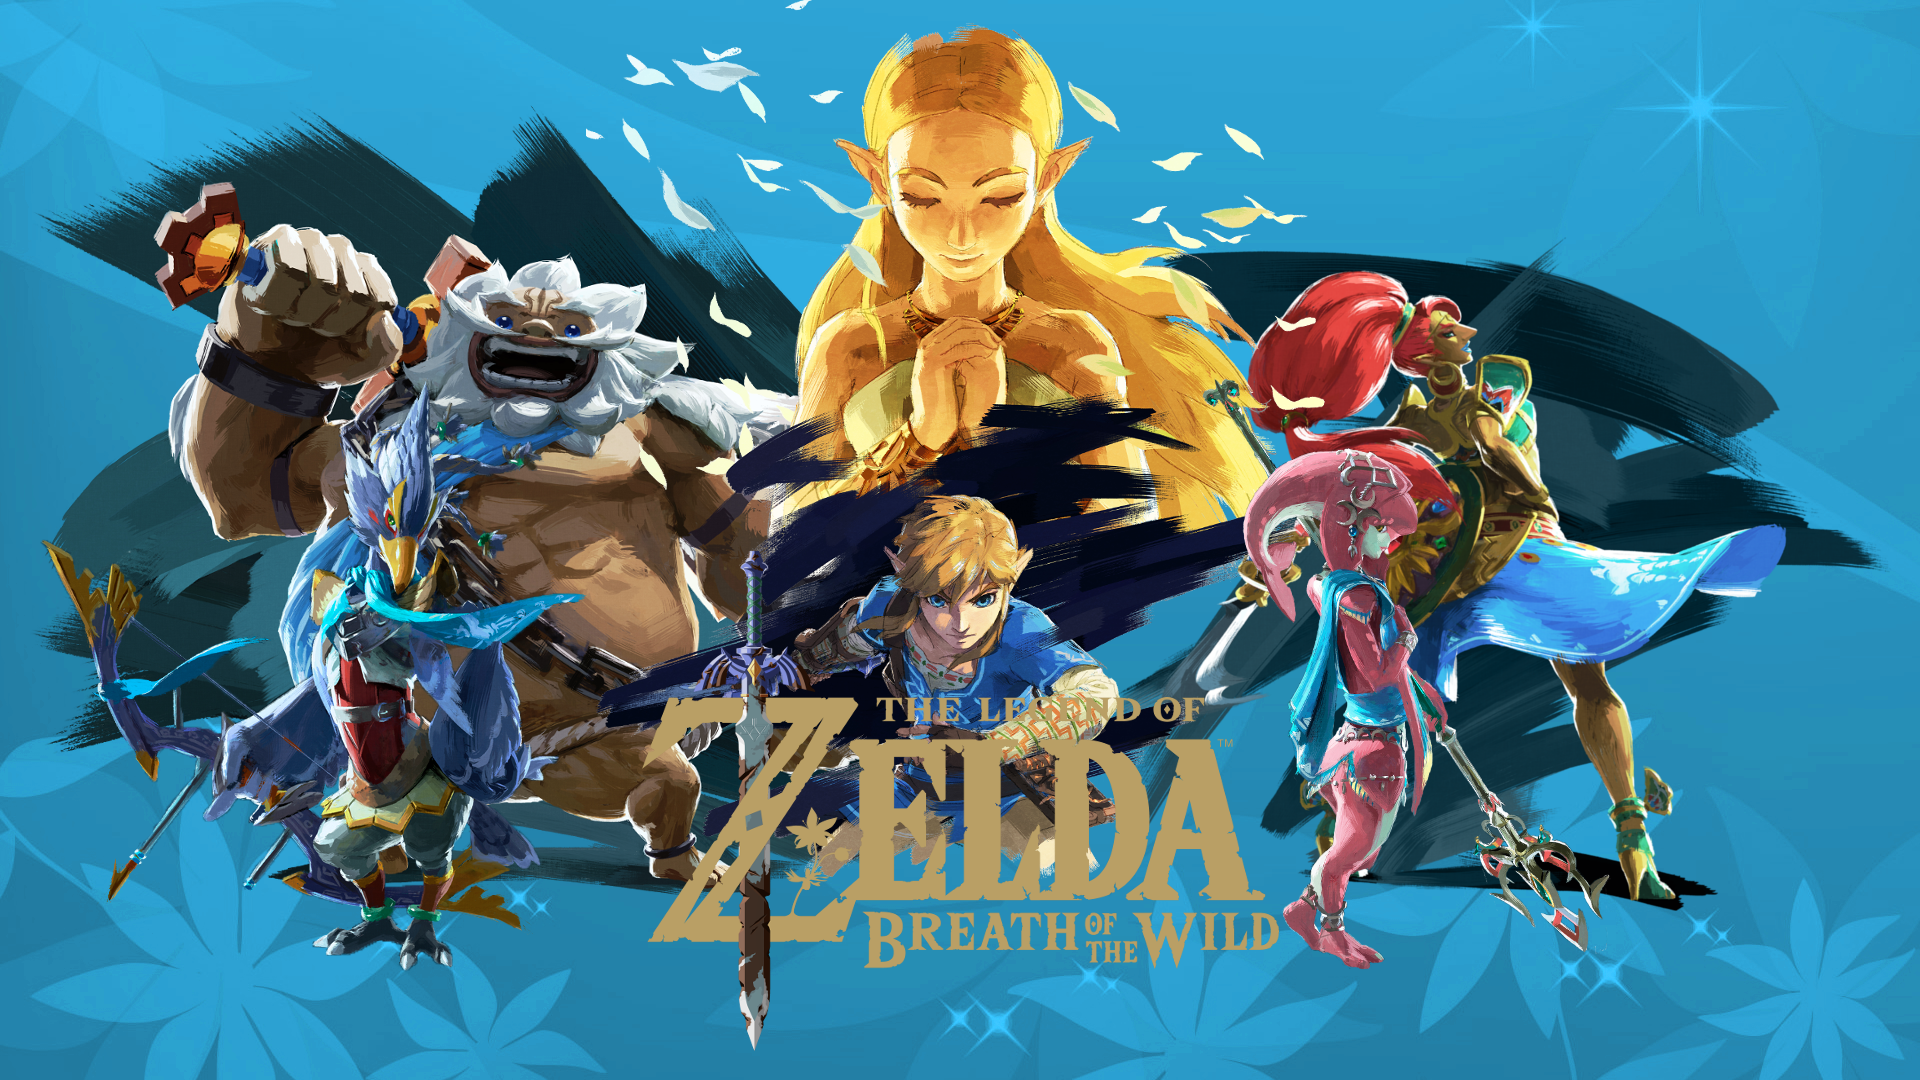 1920x1080 The Legend Of Zelda Breath Of The Wild Wallpaper Background Image View Download Comment Zelda Hyrule Warriors Legend Of Zelda Breath Of The Wild